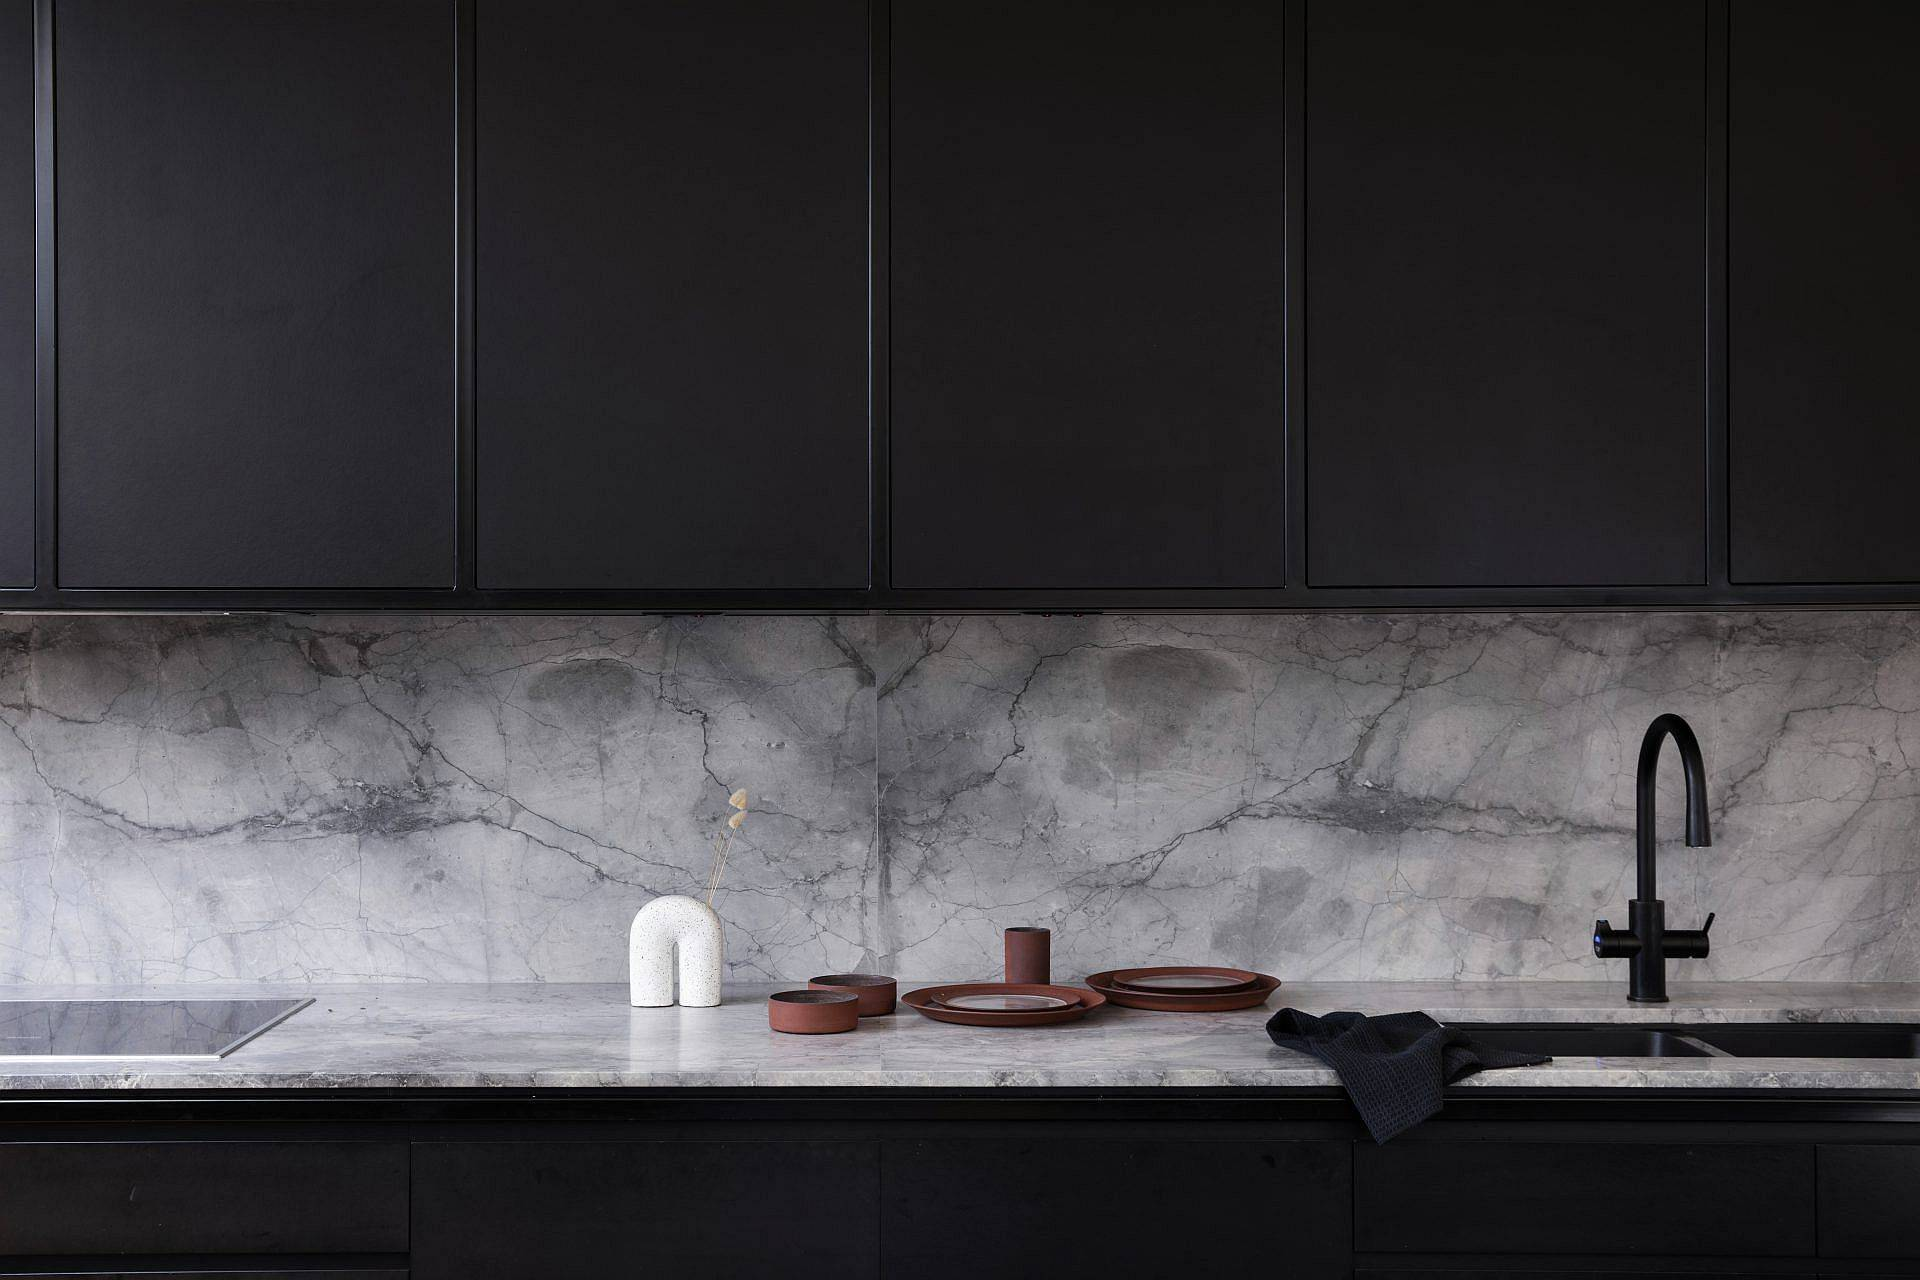 Modern-kitchen-in-black-and-white-with-drak-cabinets-and-marble-backsplash-and-countertops-55303